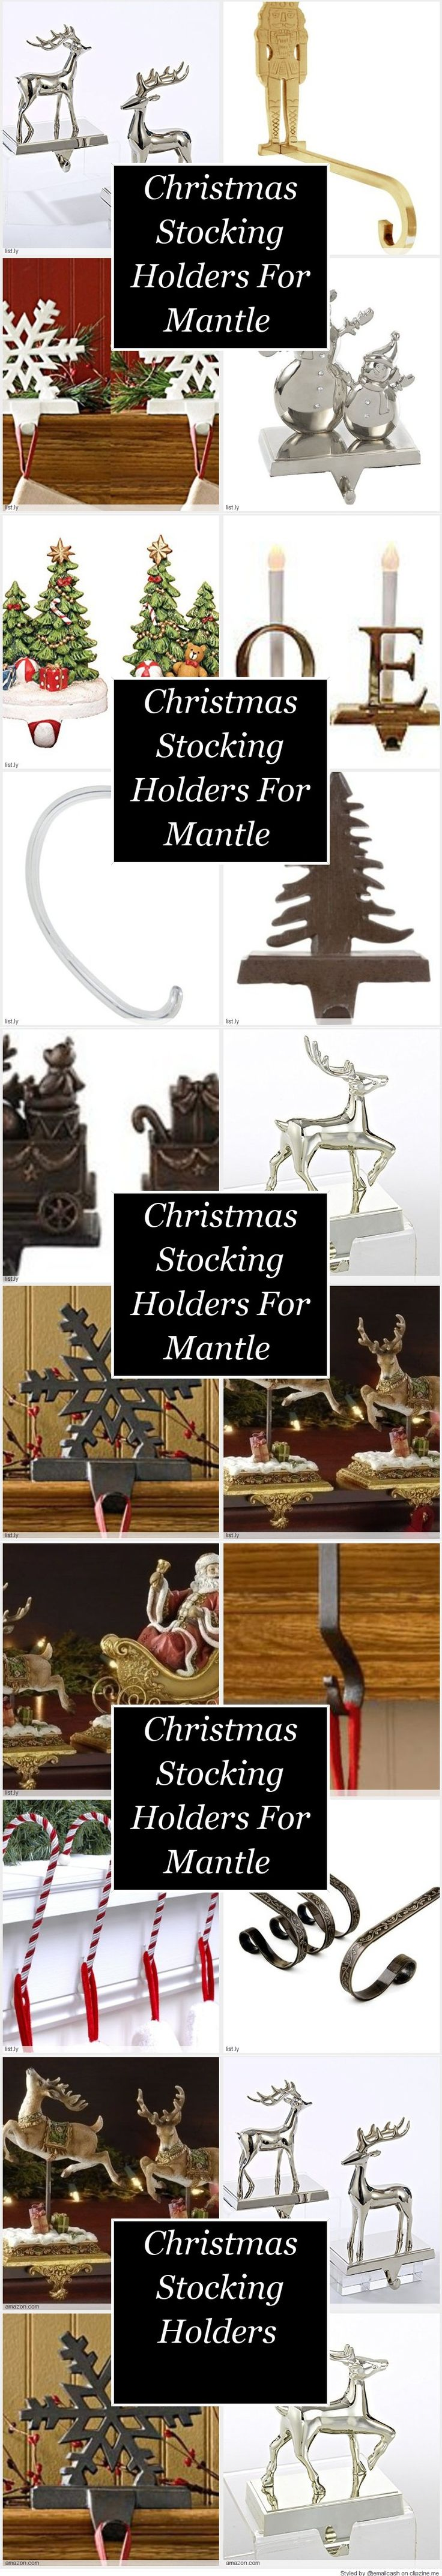 Christmas Stocking Holders For Mantle - Get these Christmas stocking holders for mantle to brighten up your Christmas decor. They come in all kinds of colors, styles and designs that is sure to enhance your Christmas mantel.